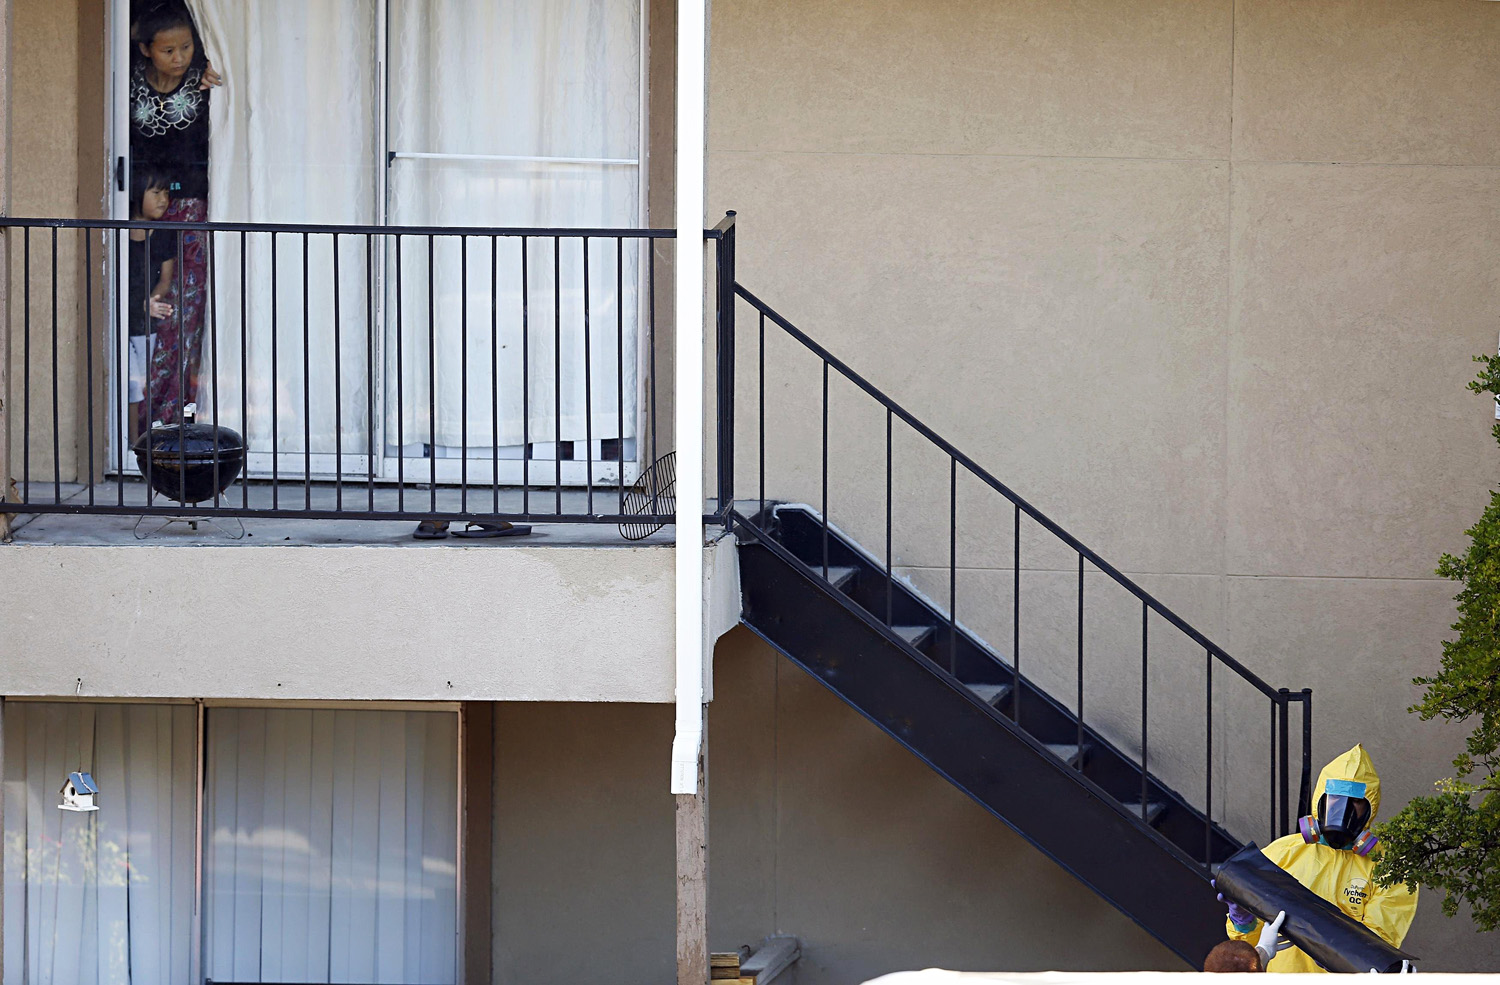 Neighbors watch as a biohazard team cleans the apartment where the Dallas Ebola patient stayed